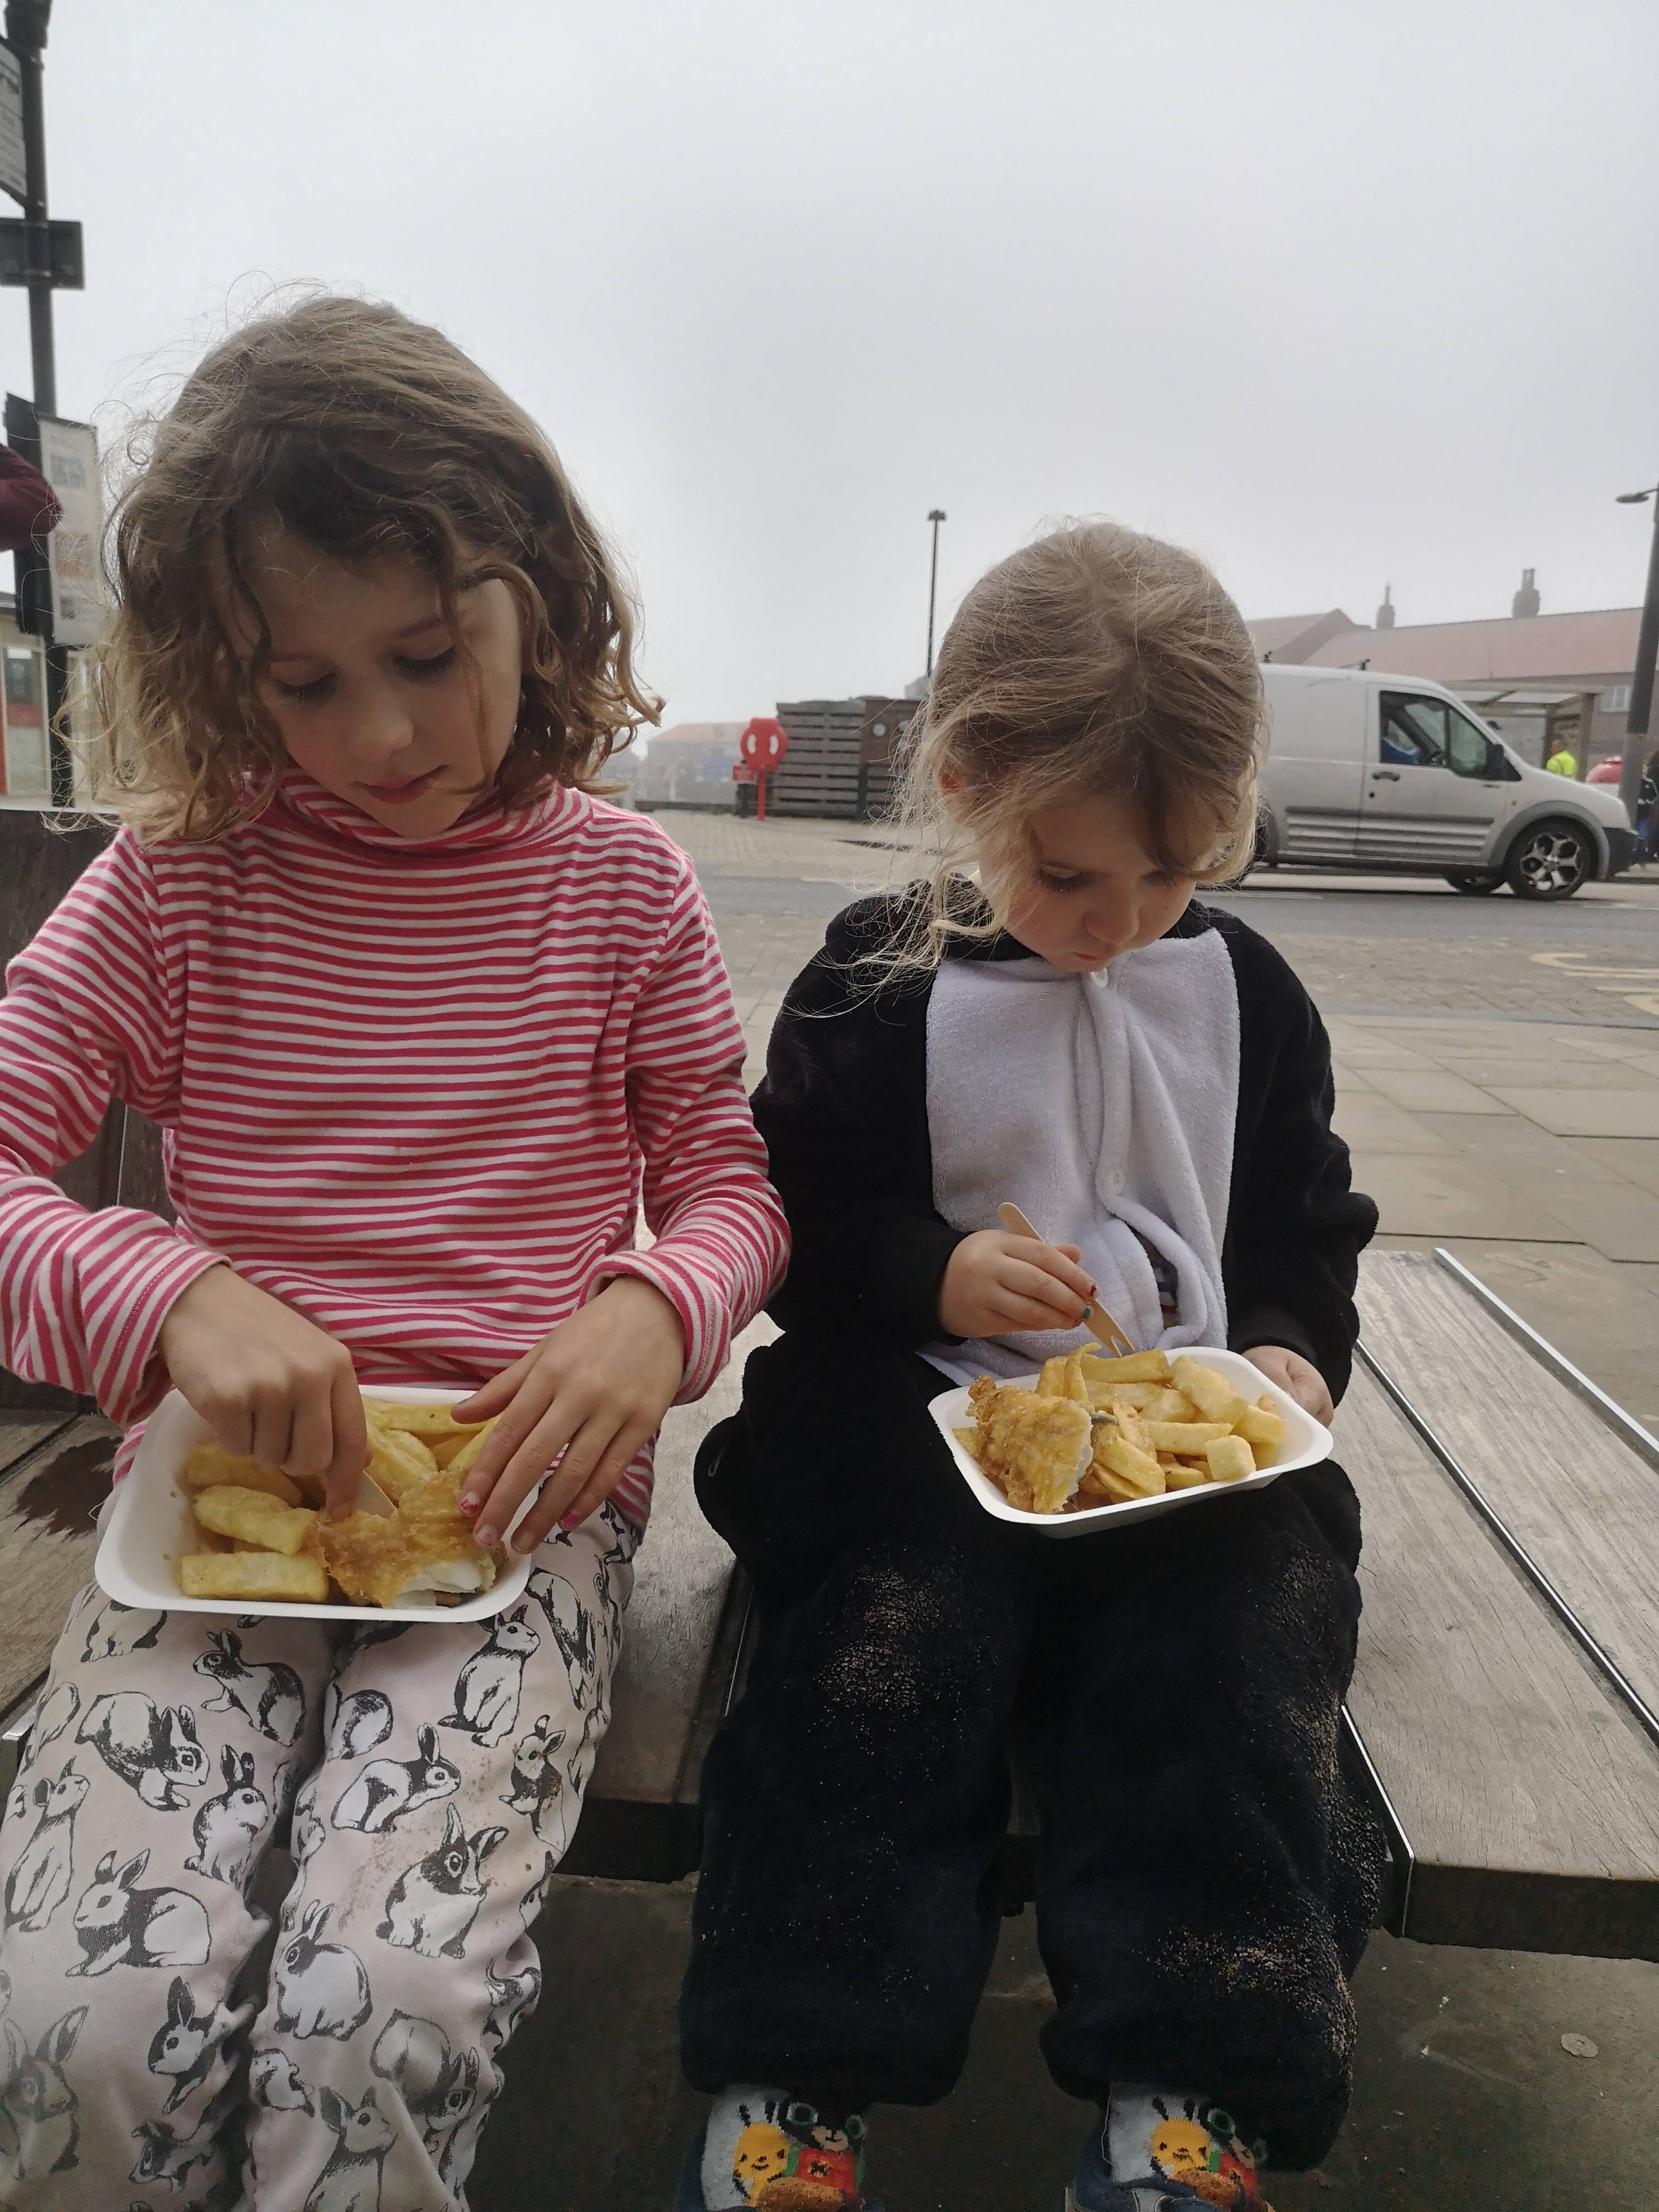 2 girls eat fish and chips from cartons